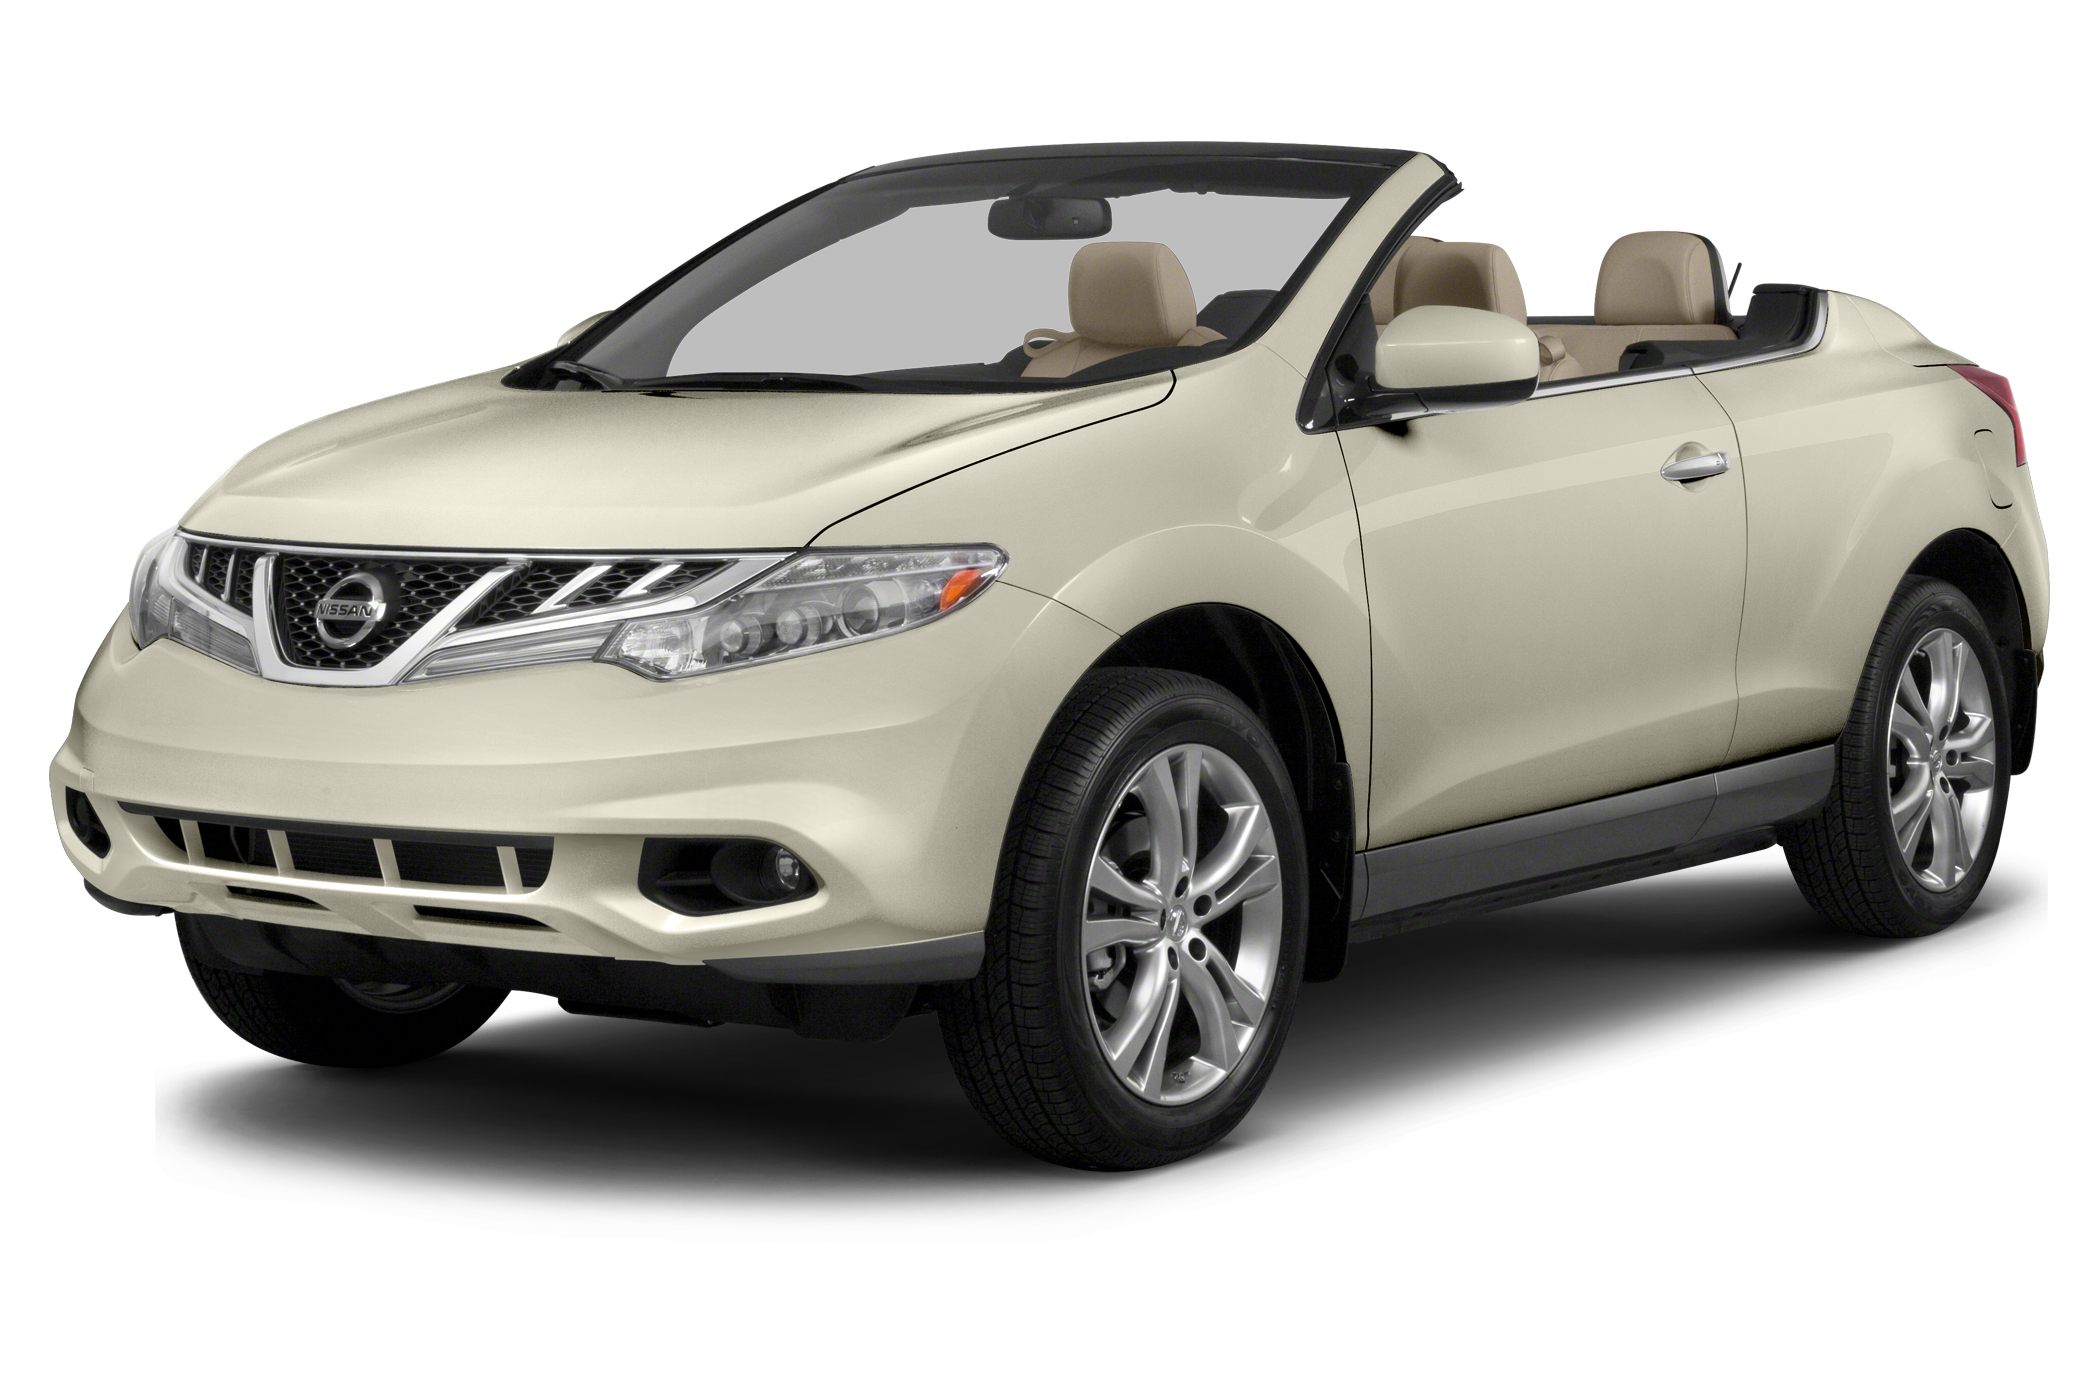 2014 Nissan Murano CrossCabriolet Base Convertible for sale in Pembroke Pines for $33,995 with 8,106 miles